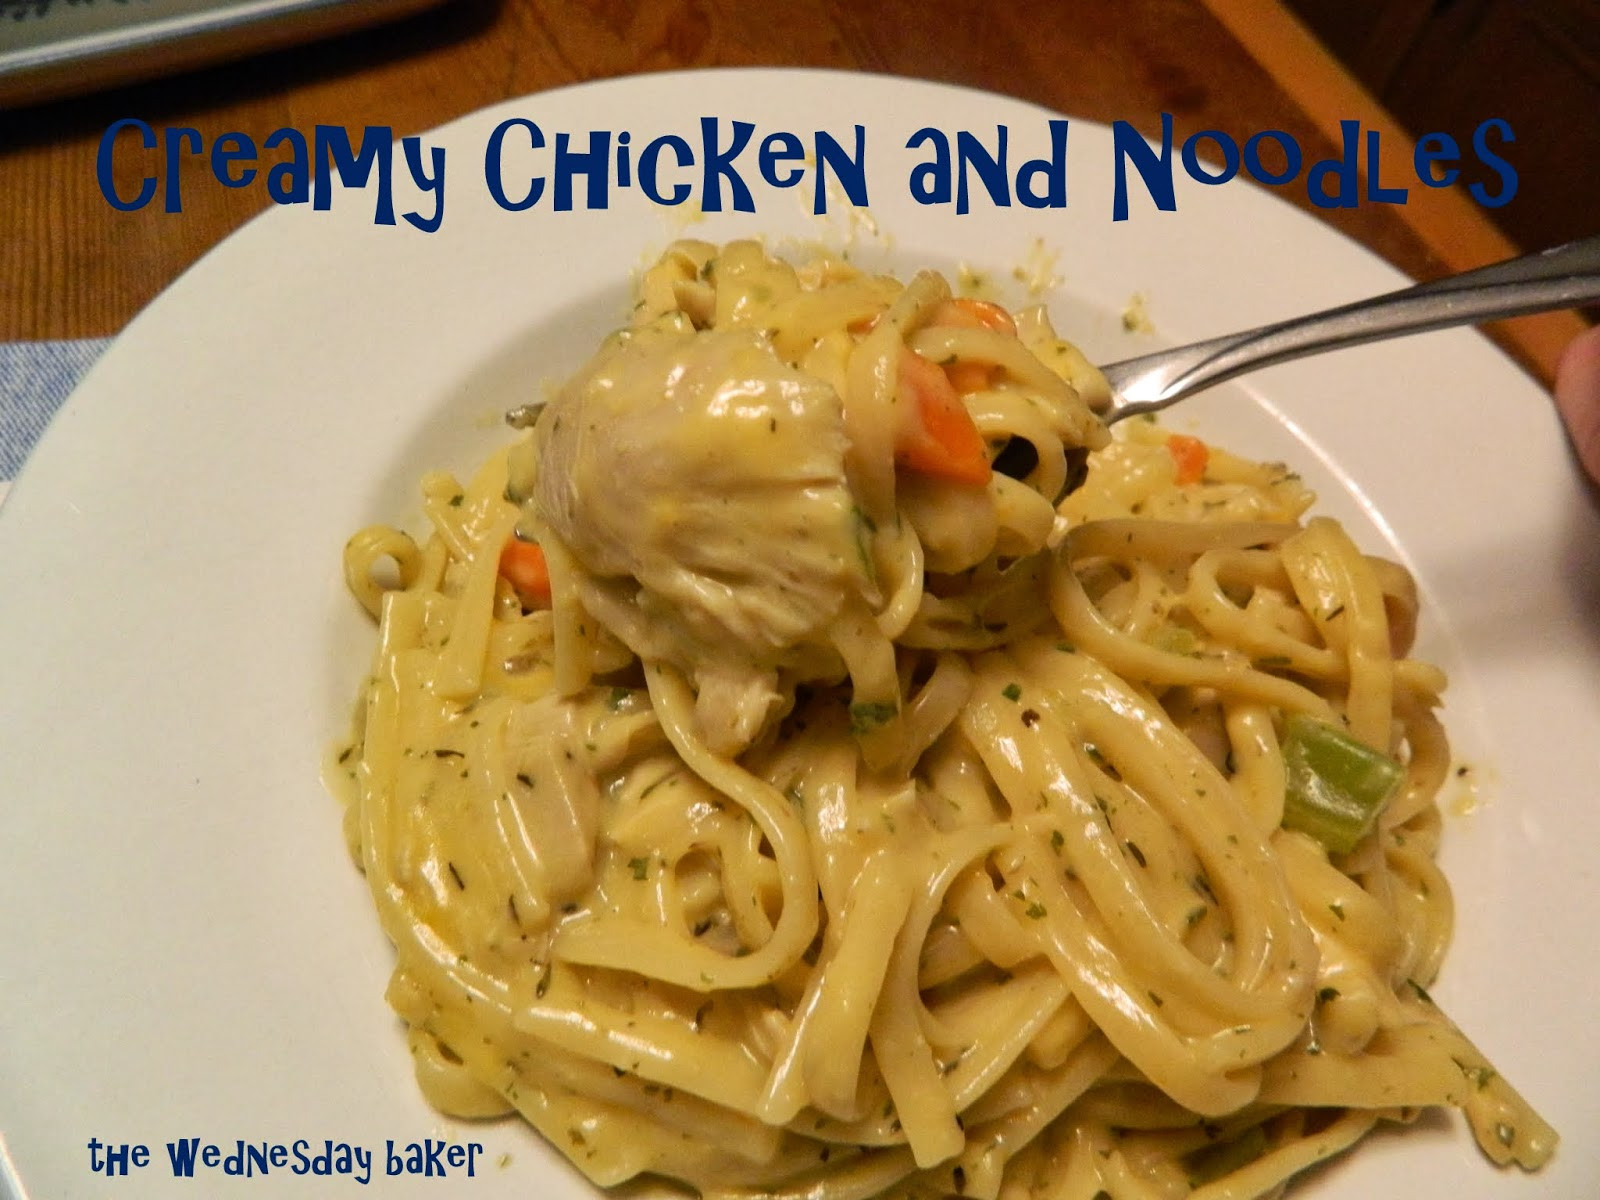 Creamy Chicken And Noodles  The Wednesday Baker ONE POT CREAMY CHICKEN & NOODLES